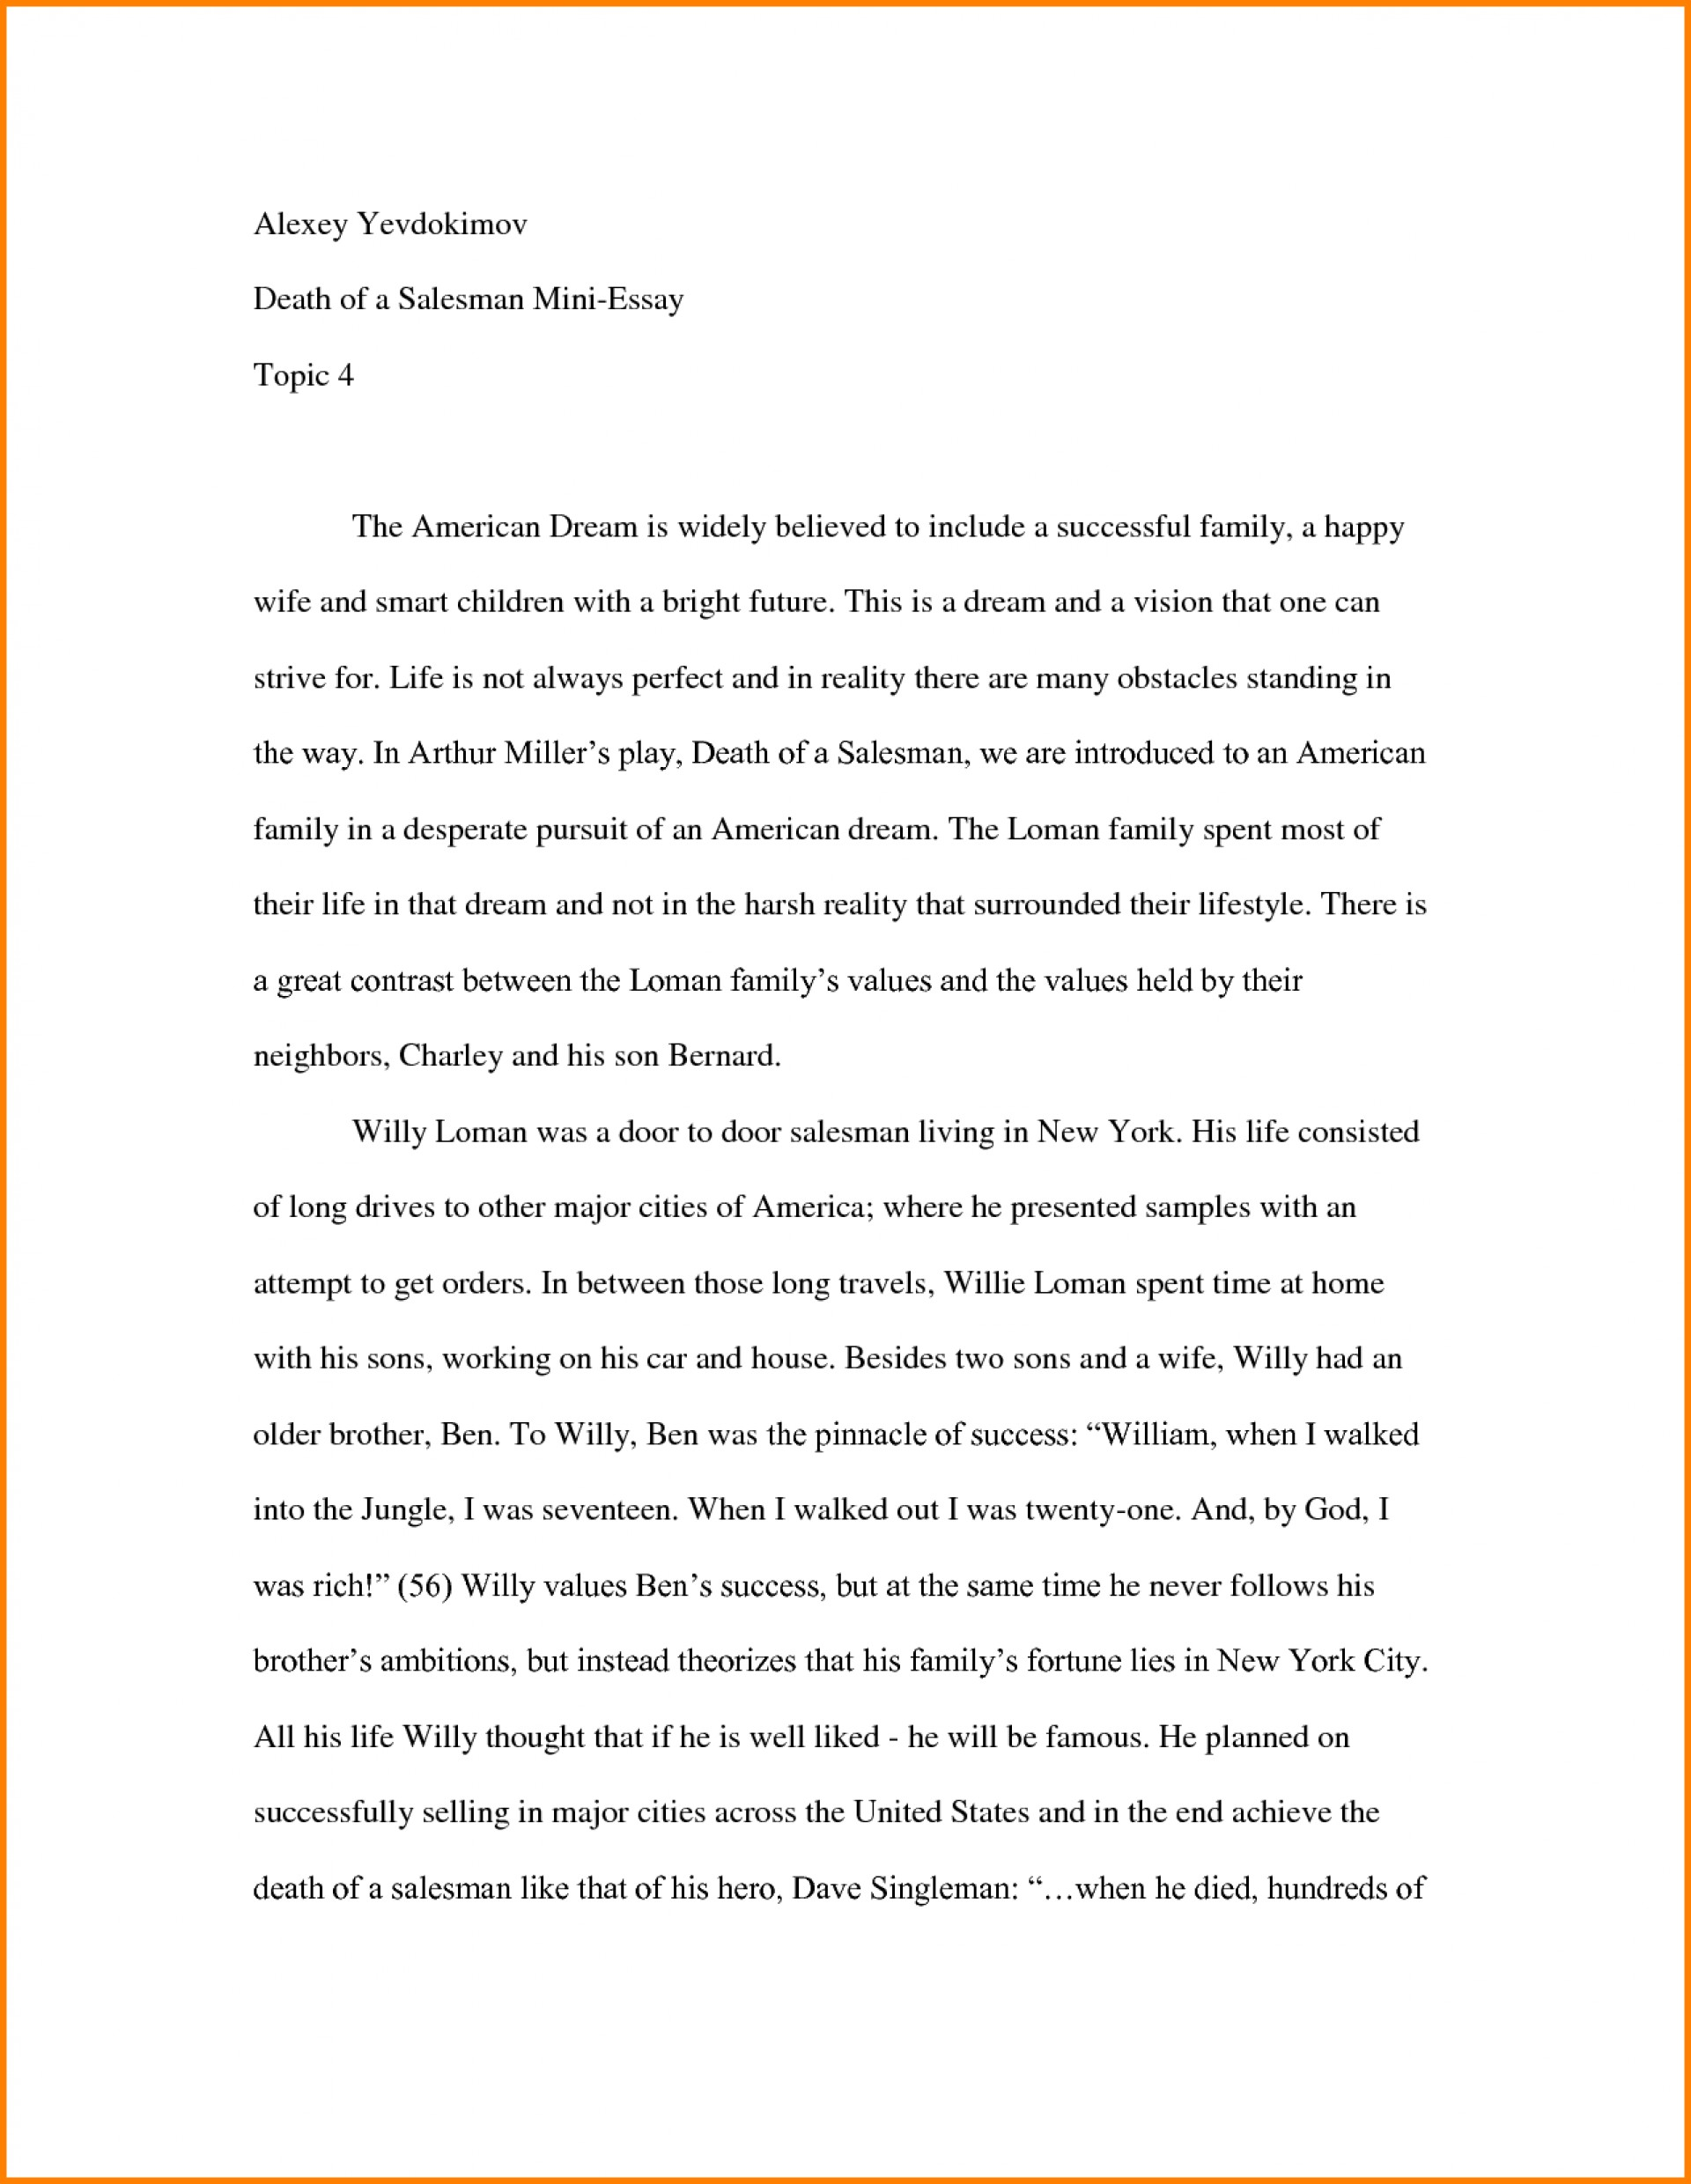 015 Essay Example How To Start An About Myself Yourself Letter Template Photo For College University Autobiography Introductory Scholarship With Quote Examples Unique Off A Job 1920